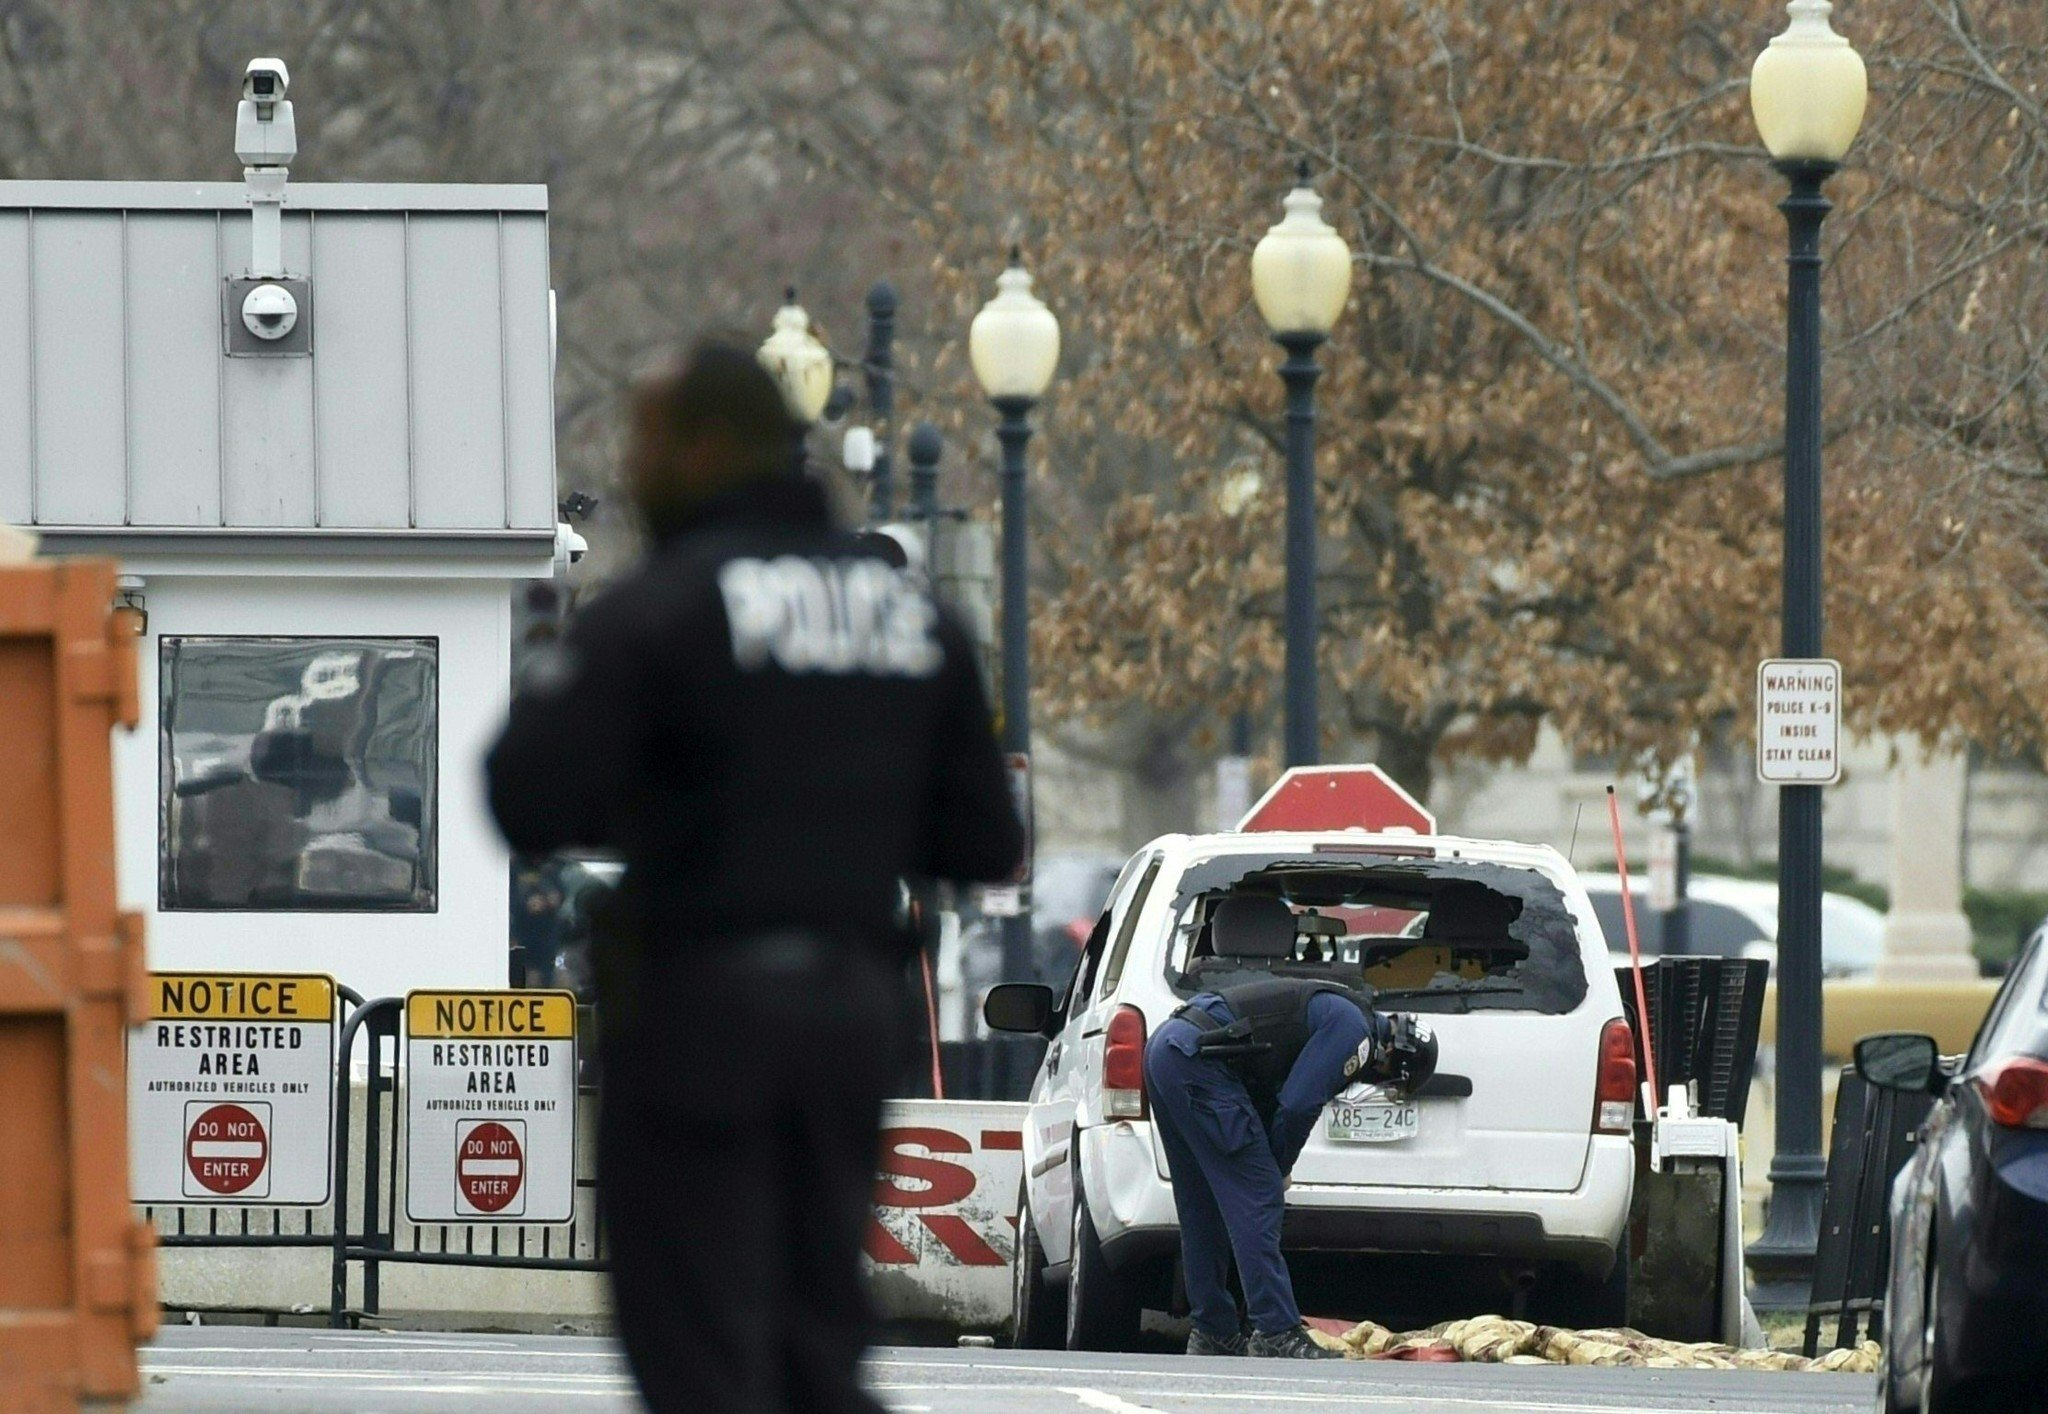 Woman arrested after driving into White House barrier was convicted last year of trying to climb fence